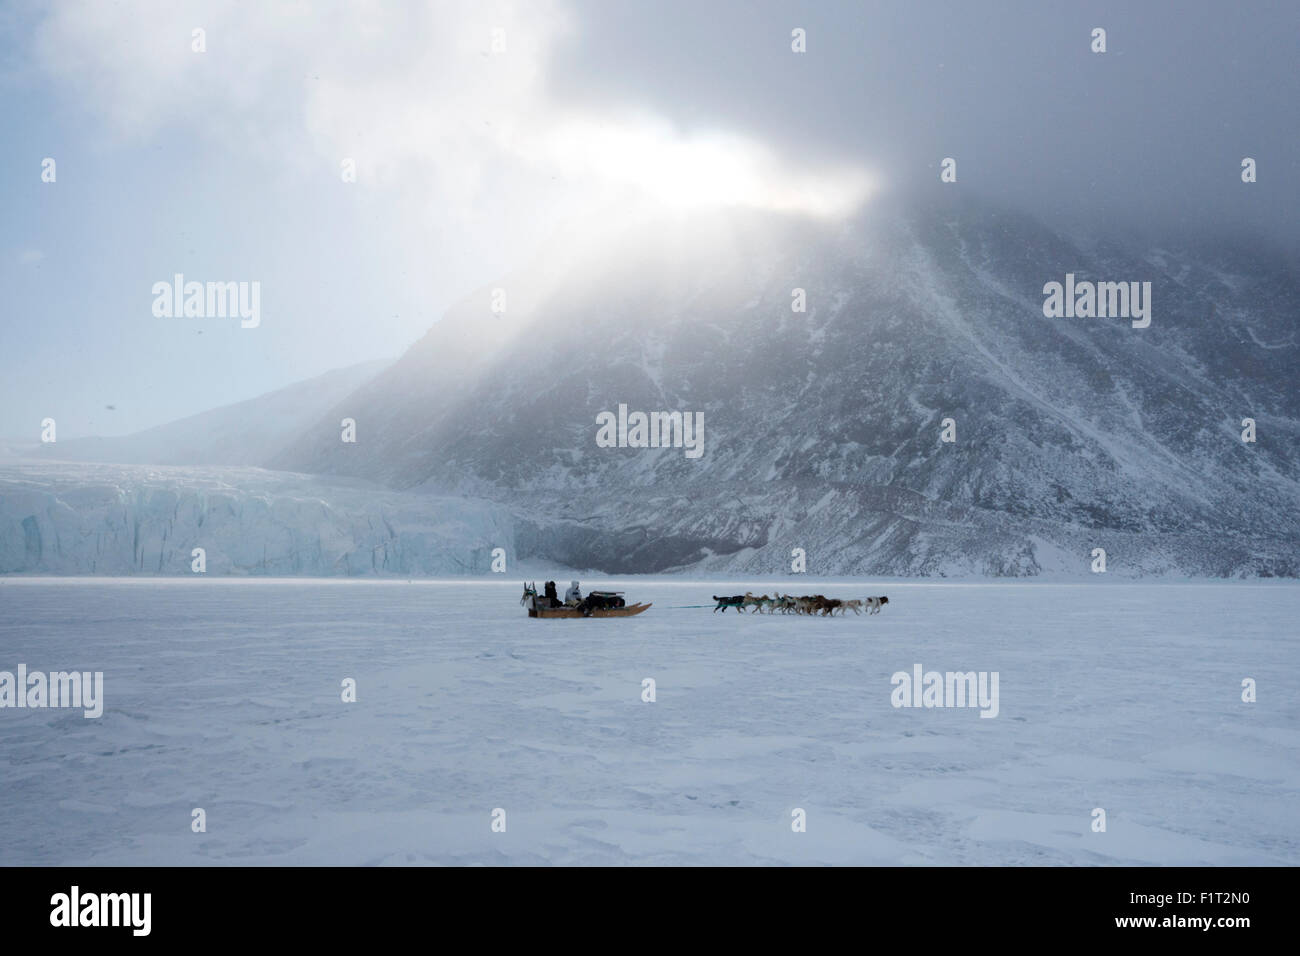 Inuit hunter and his dog team travelling on the sea ice, Greenland, Denmark, Polar Regions - Stock Image